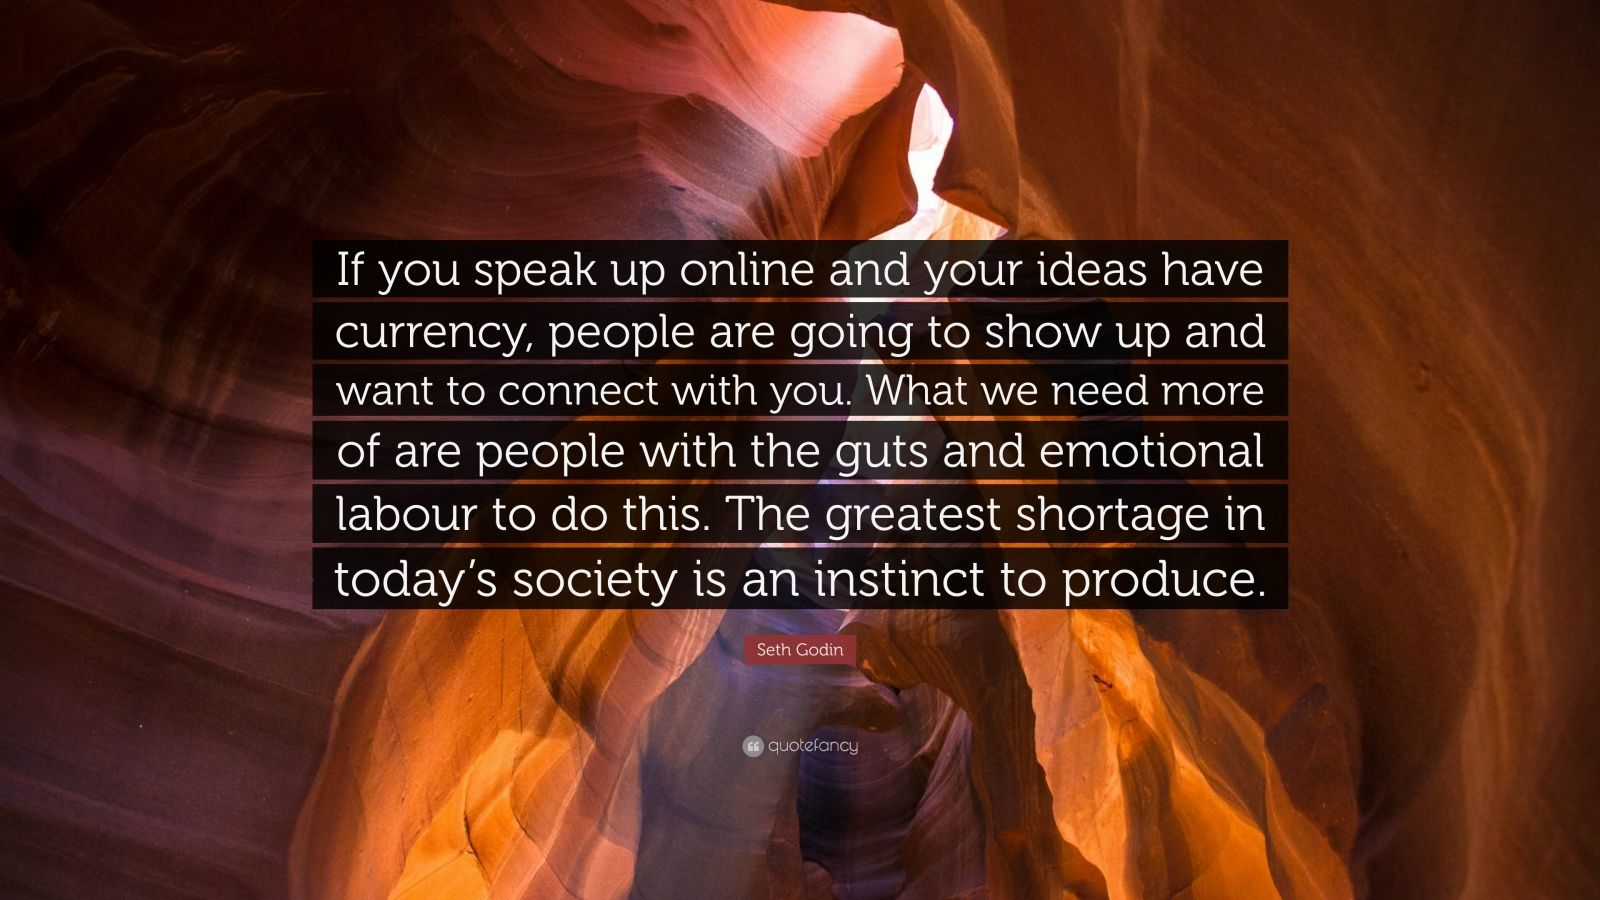 """Seth Godin Quote: """"If you speak up online and your ideas have currency, people are going to show up and want to connect with you. What we need more of are people with the guts and emotional labour to do this. The greatest shortage in today's society is an instinct to produce."""""""